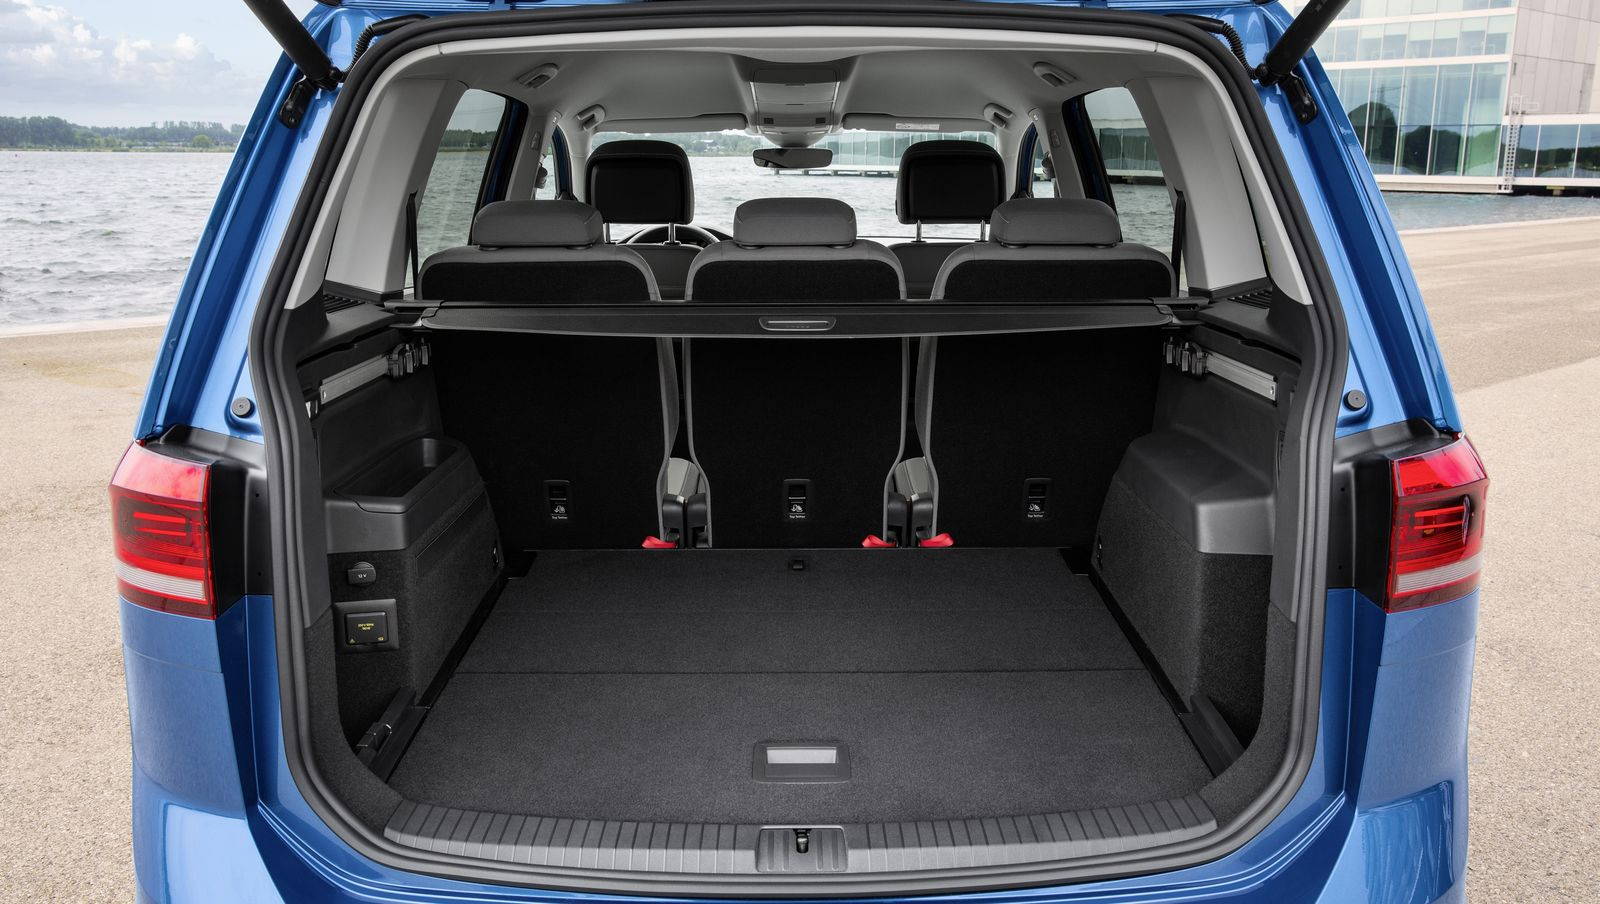 vw touran boot dimensions ivoiregion. Black Bedroom Furniture Sets. Home Design Ideas